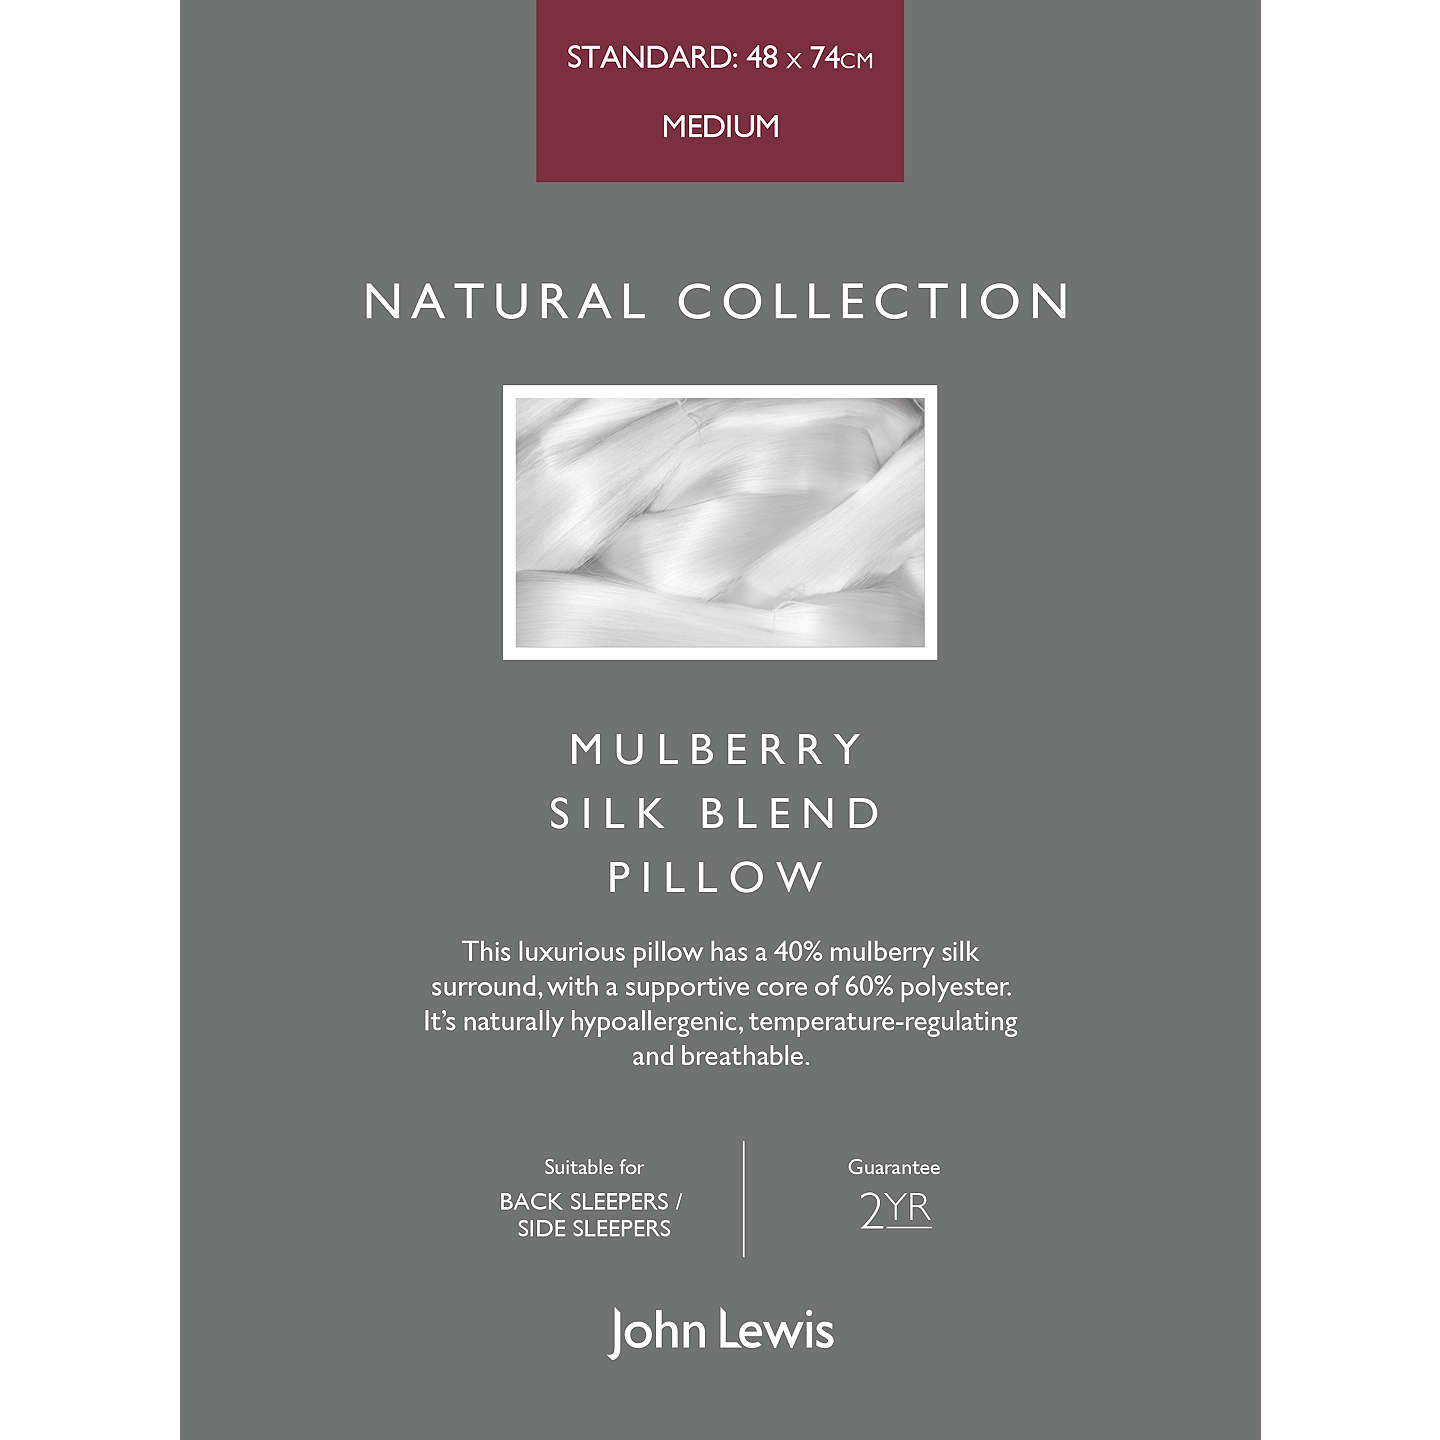 BuyJohn Lewis Natural Collection Mulberry Silk Blend Standard Pillow, Medium/Firm Online at johnlewis.com